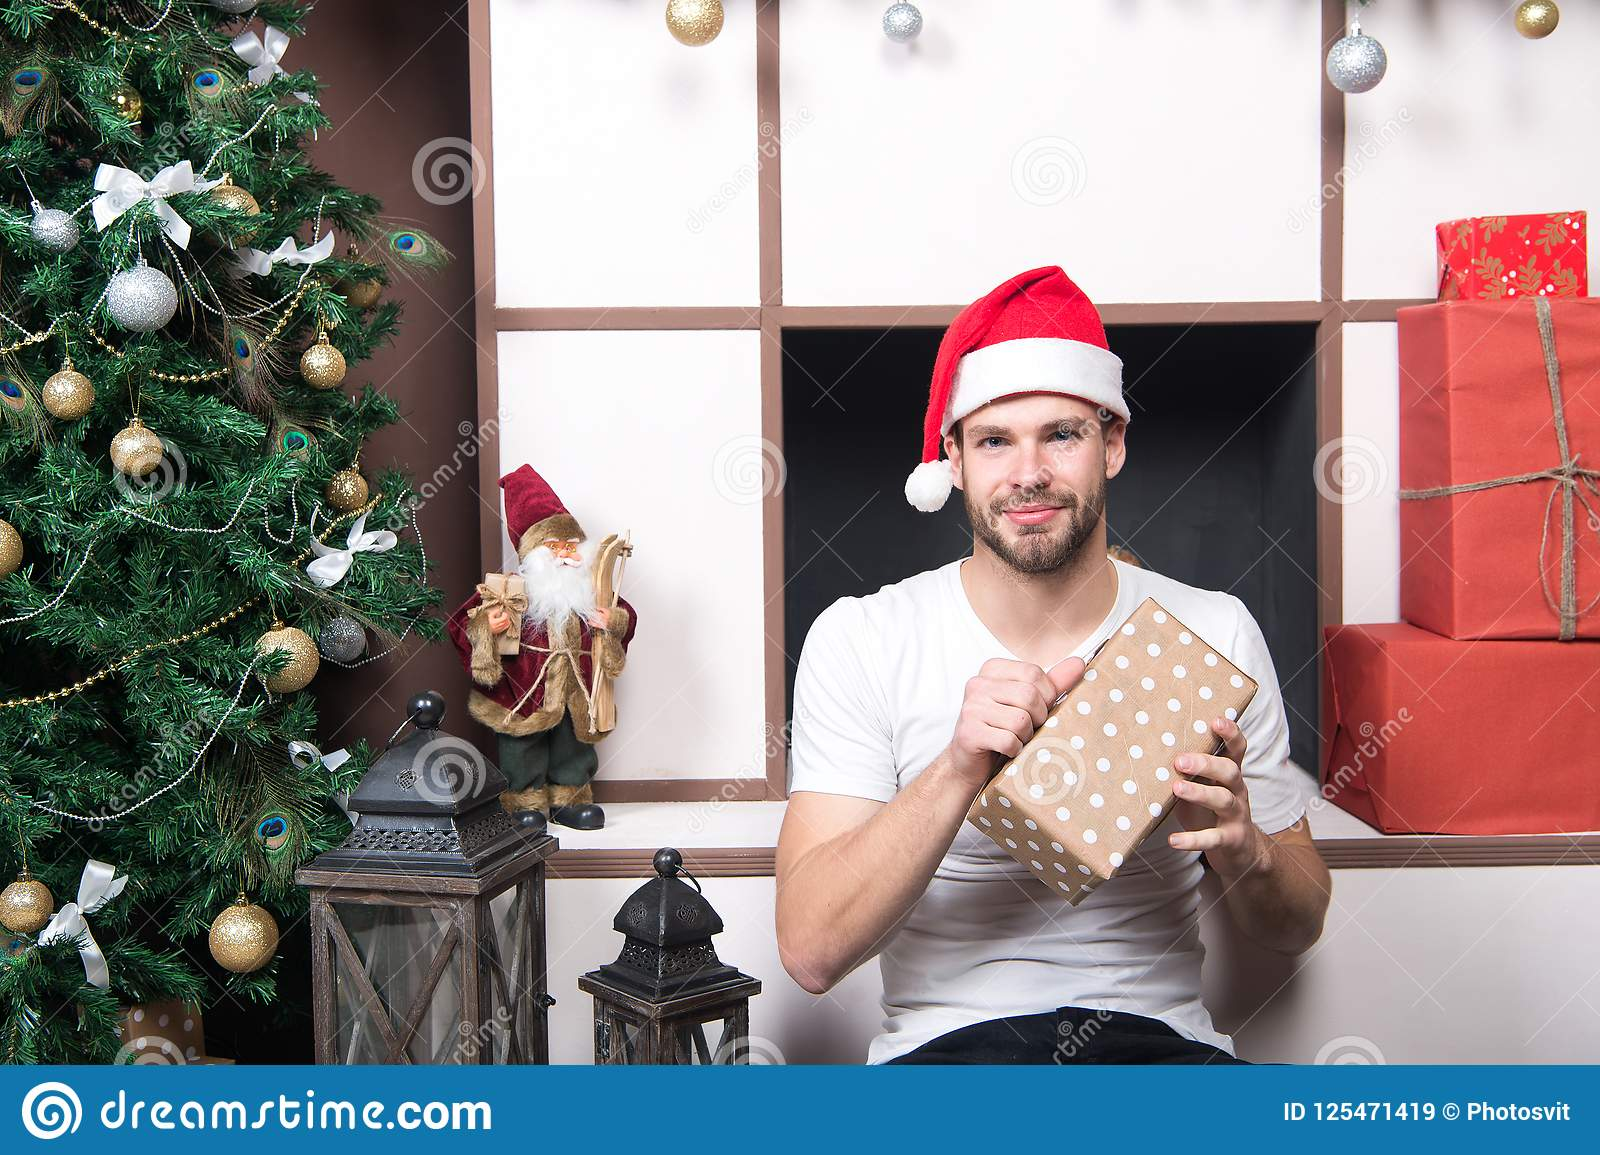 ad8f9f9defb4b Man with present box at Christmas tree. Macho in santa hat sit at  fireplace. xmas and new year gift. Boxing day concept. Winter holidays  preparation and ...